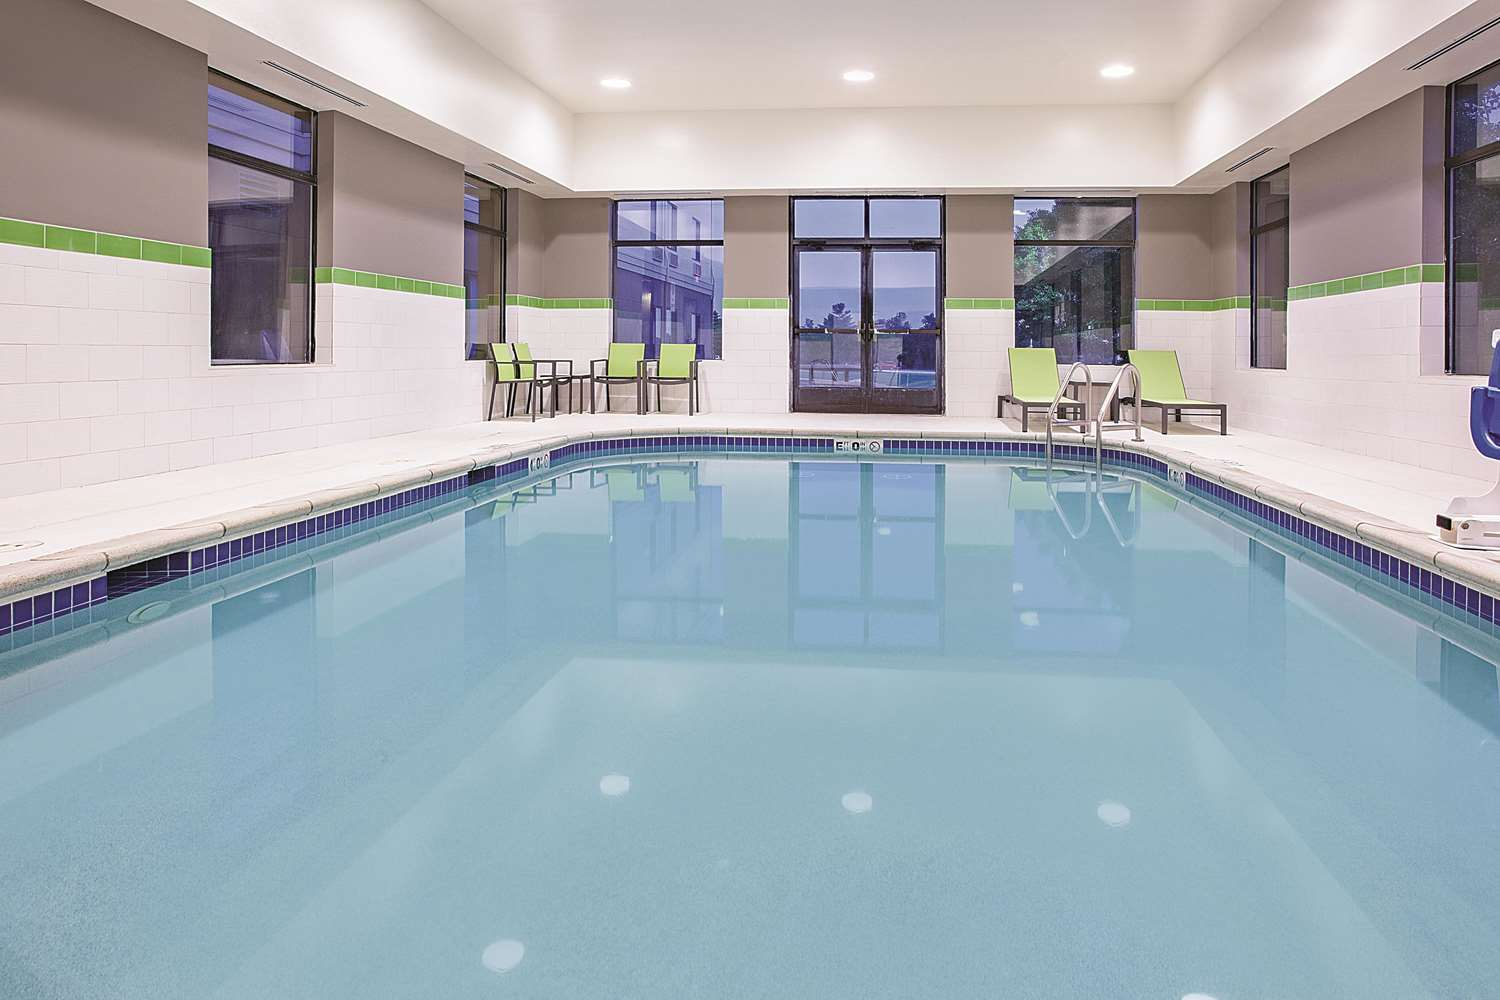 Pool - La Quinta Inn & Suites Cedar Rapids